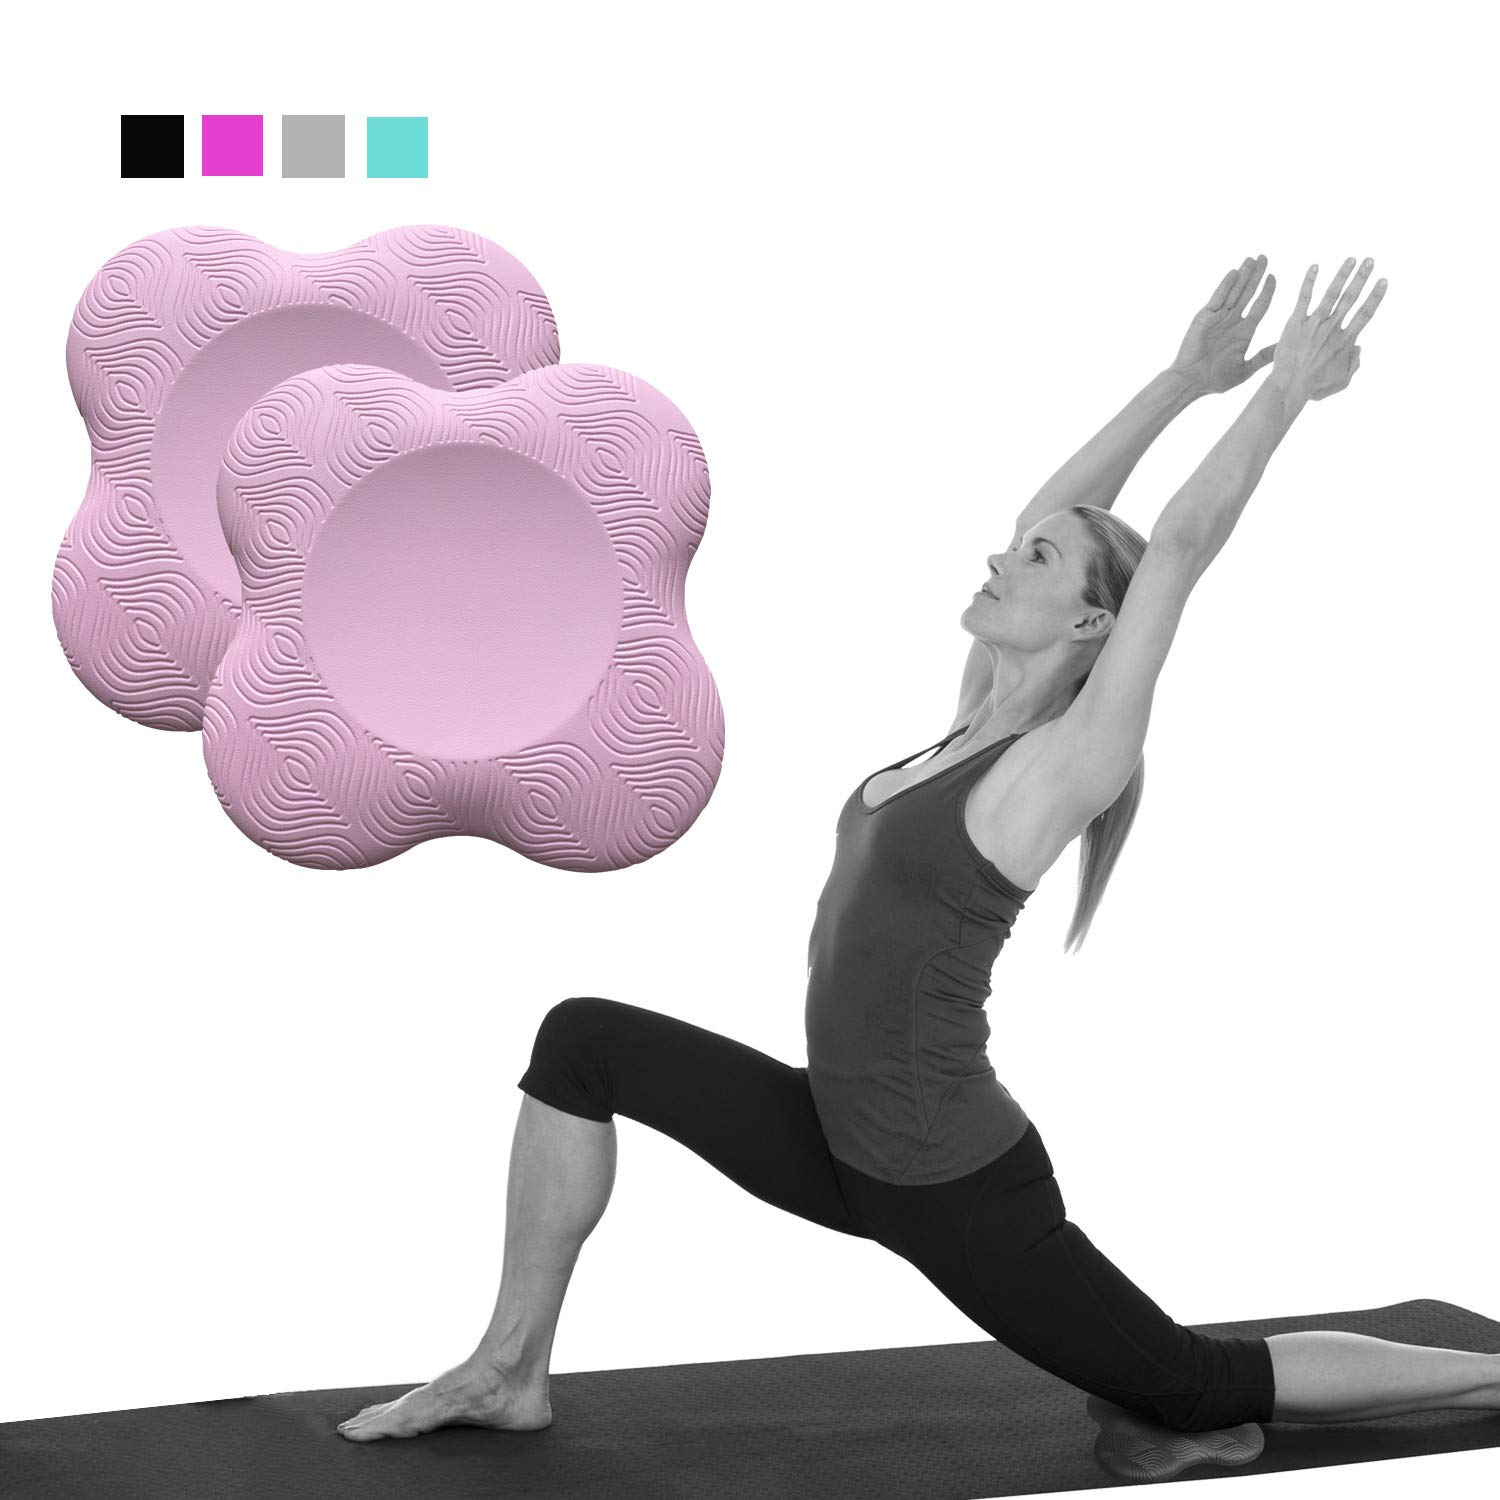 Yoga Knee Pad Support For Yoga And Pilates Excercise, Cushion For Knees,Elbow And Head For Knees, Elbow, Hand, And Head